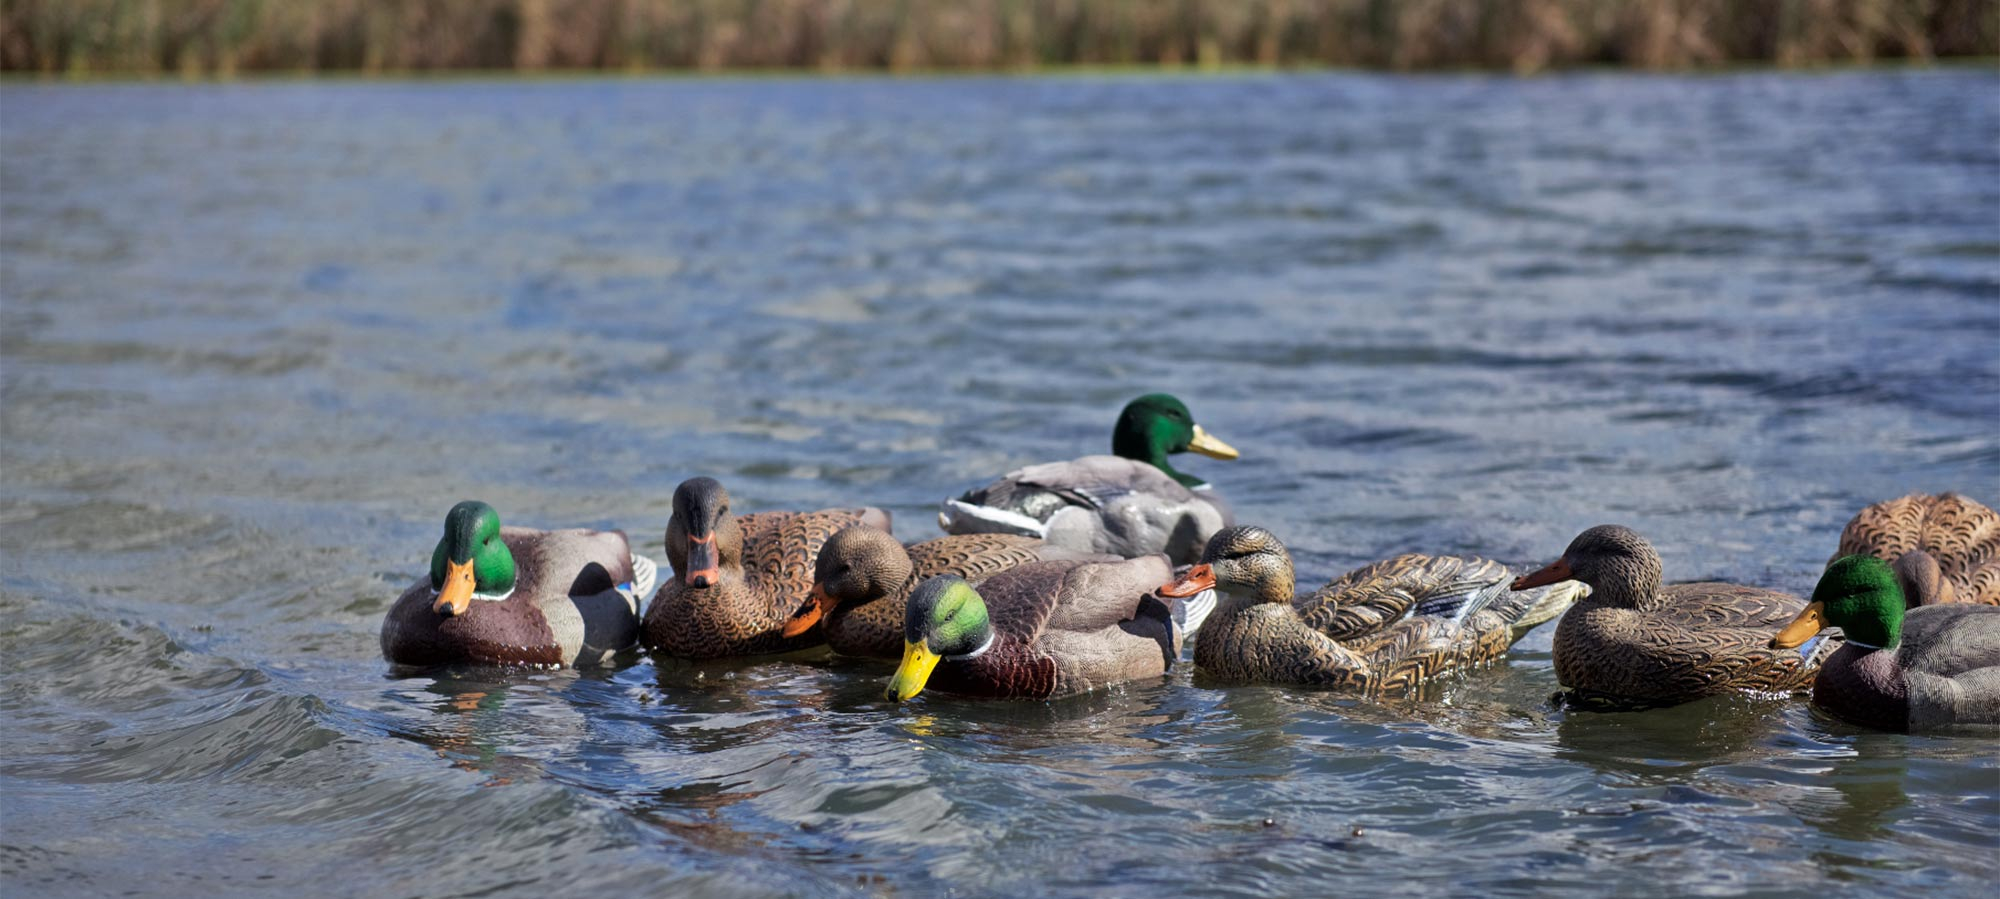 a spread of duck decoys floating on the water